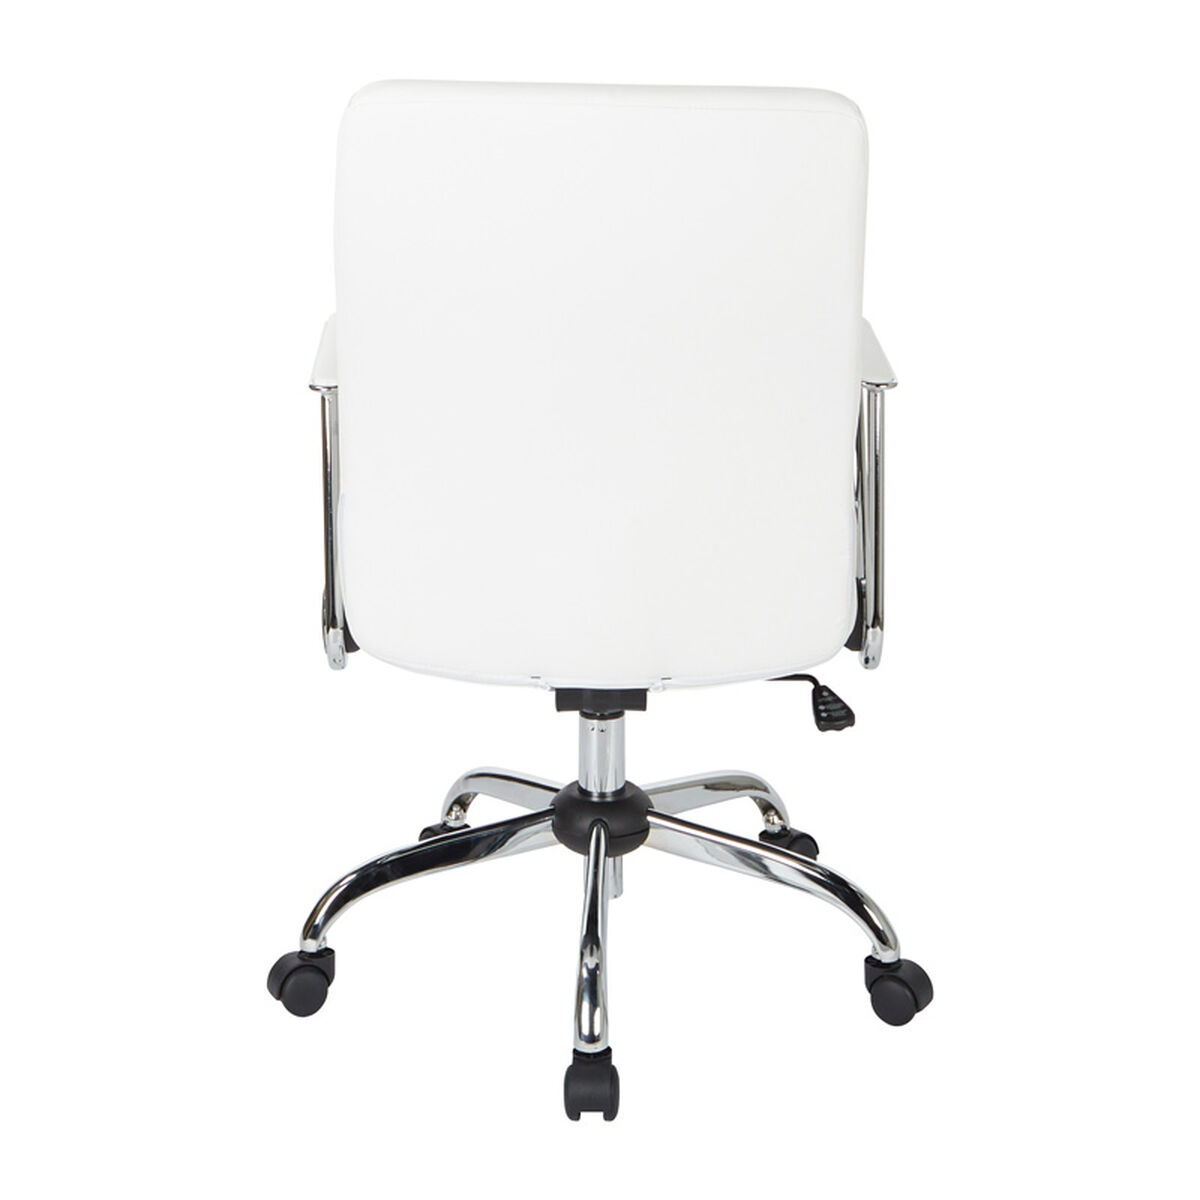 Our Work Smart Fl80287c Faux Leather Office Chair White Is On Now